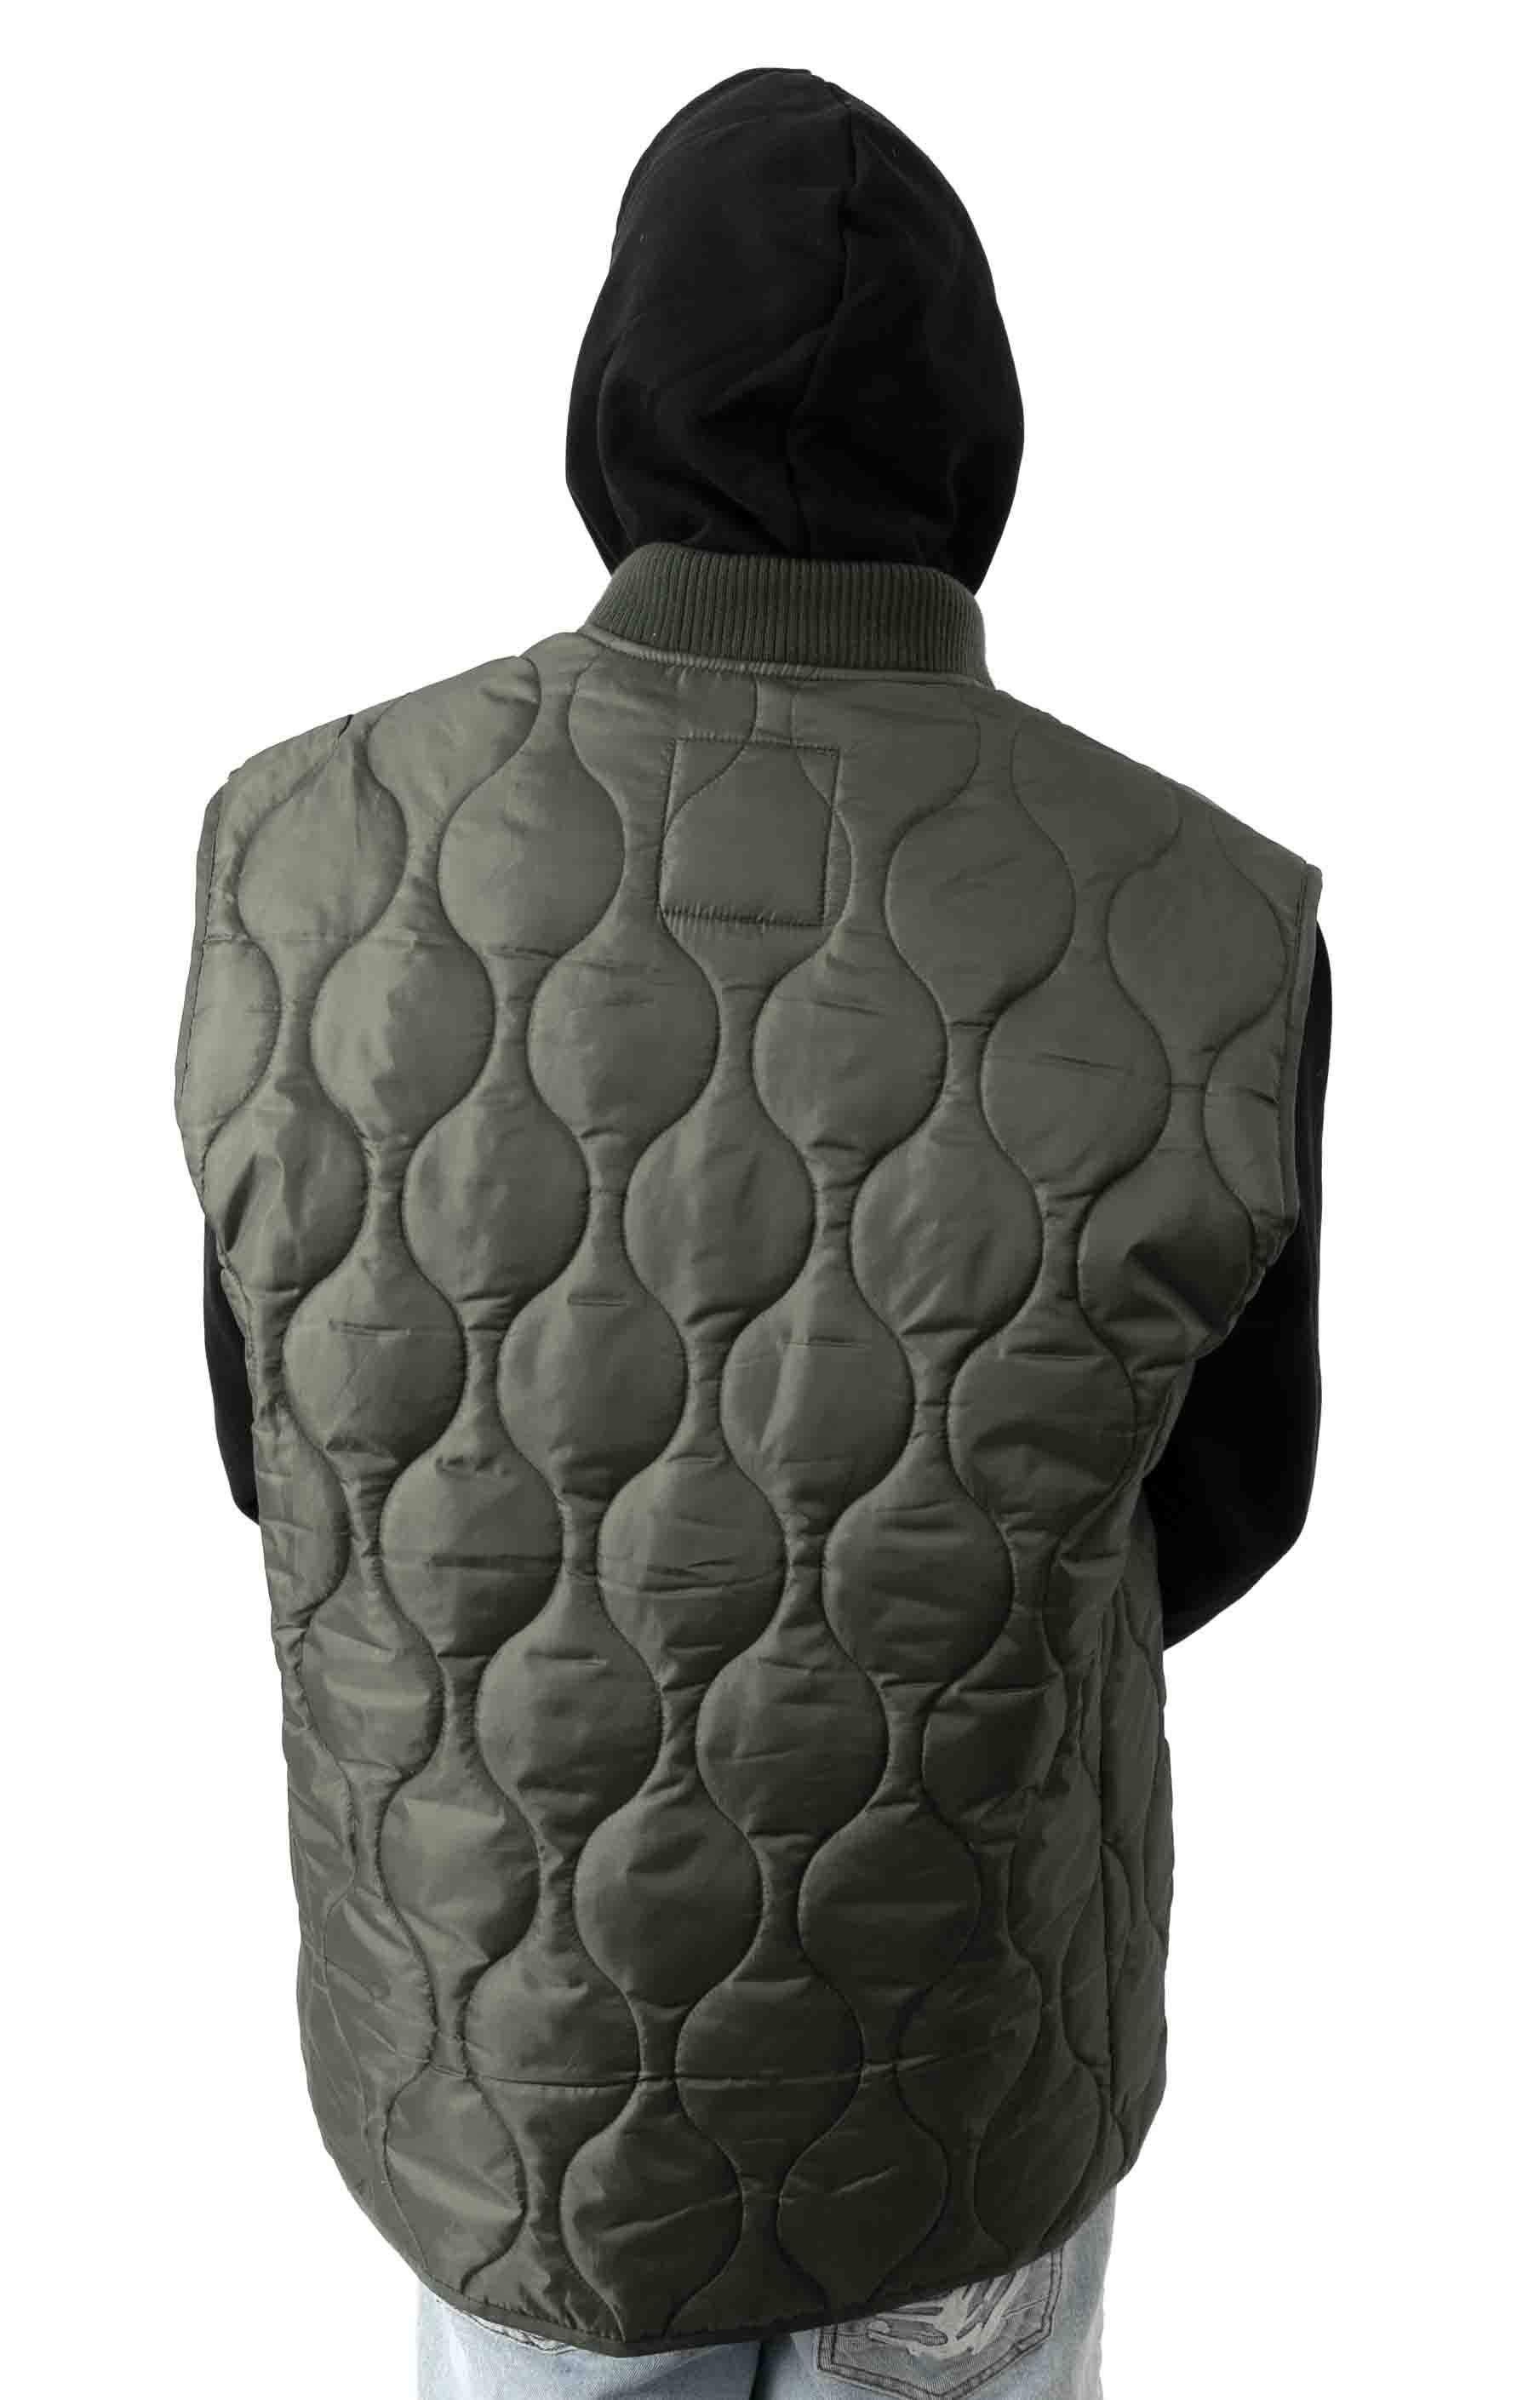 (10431) Quilted Woobie Vest - Olive Drab 3